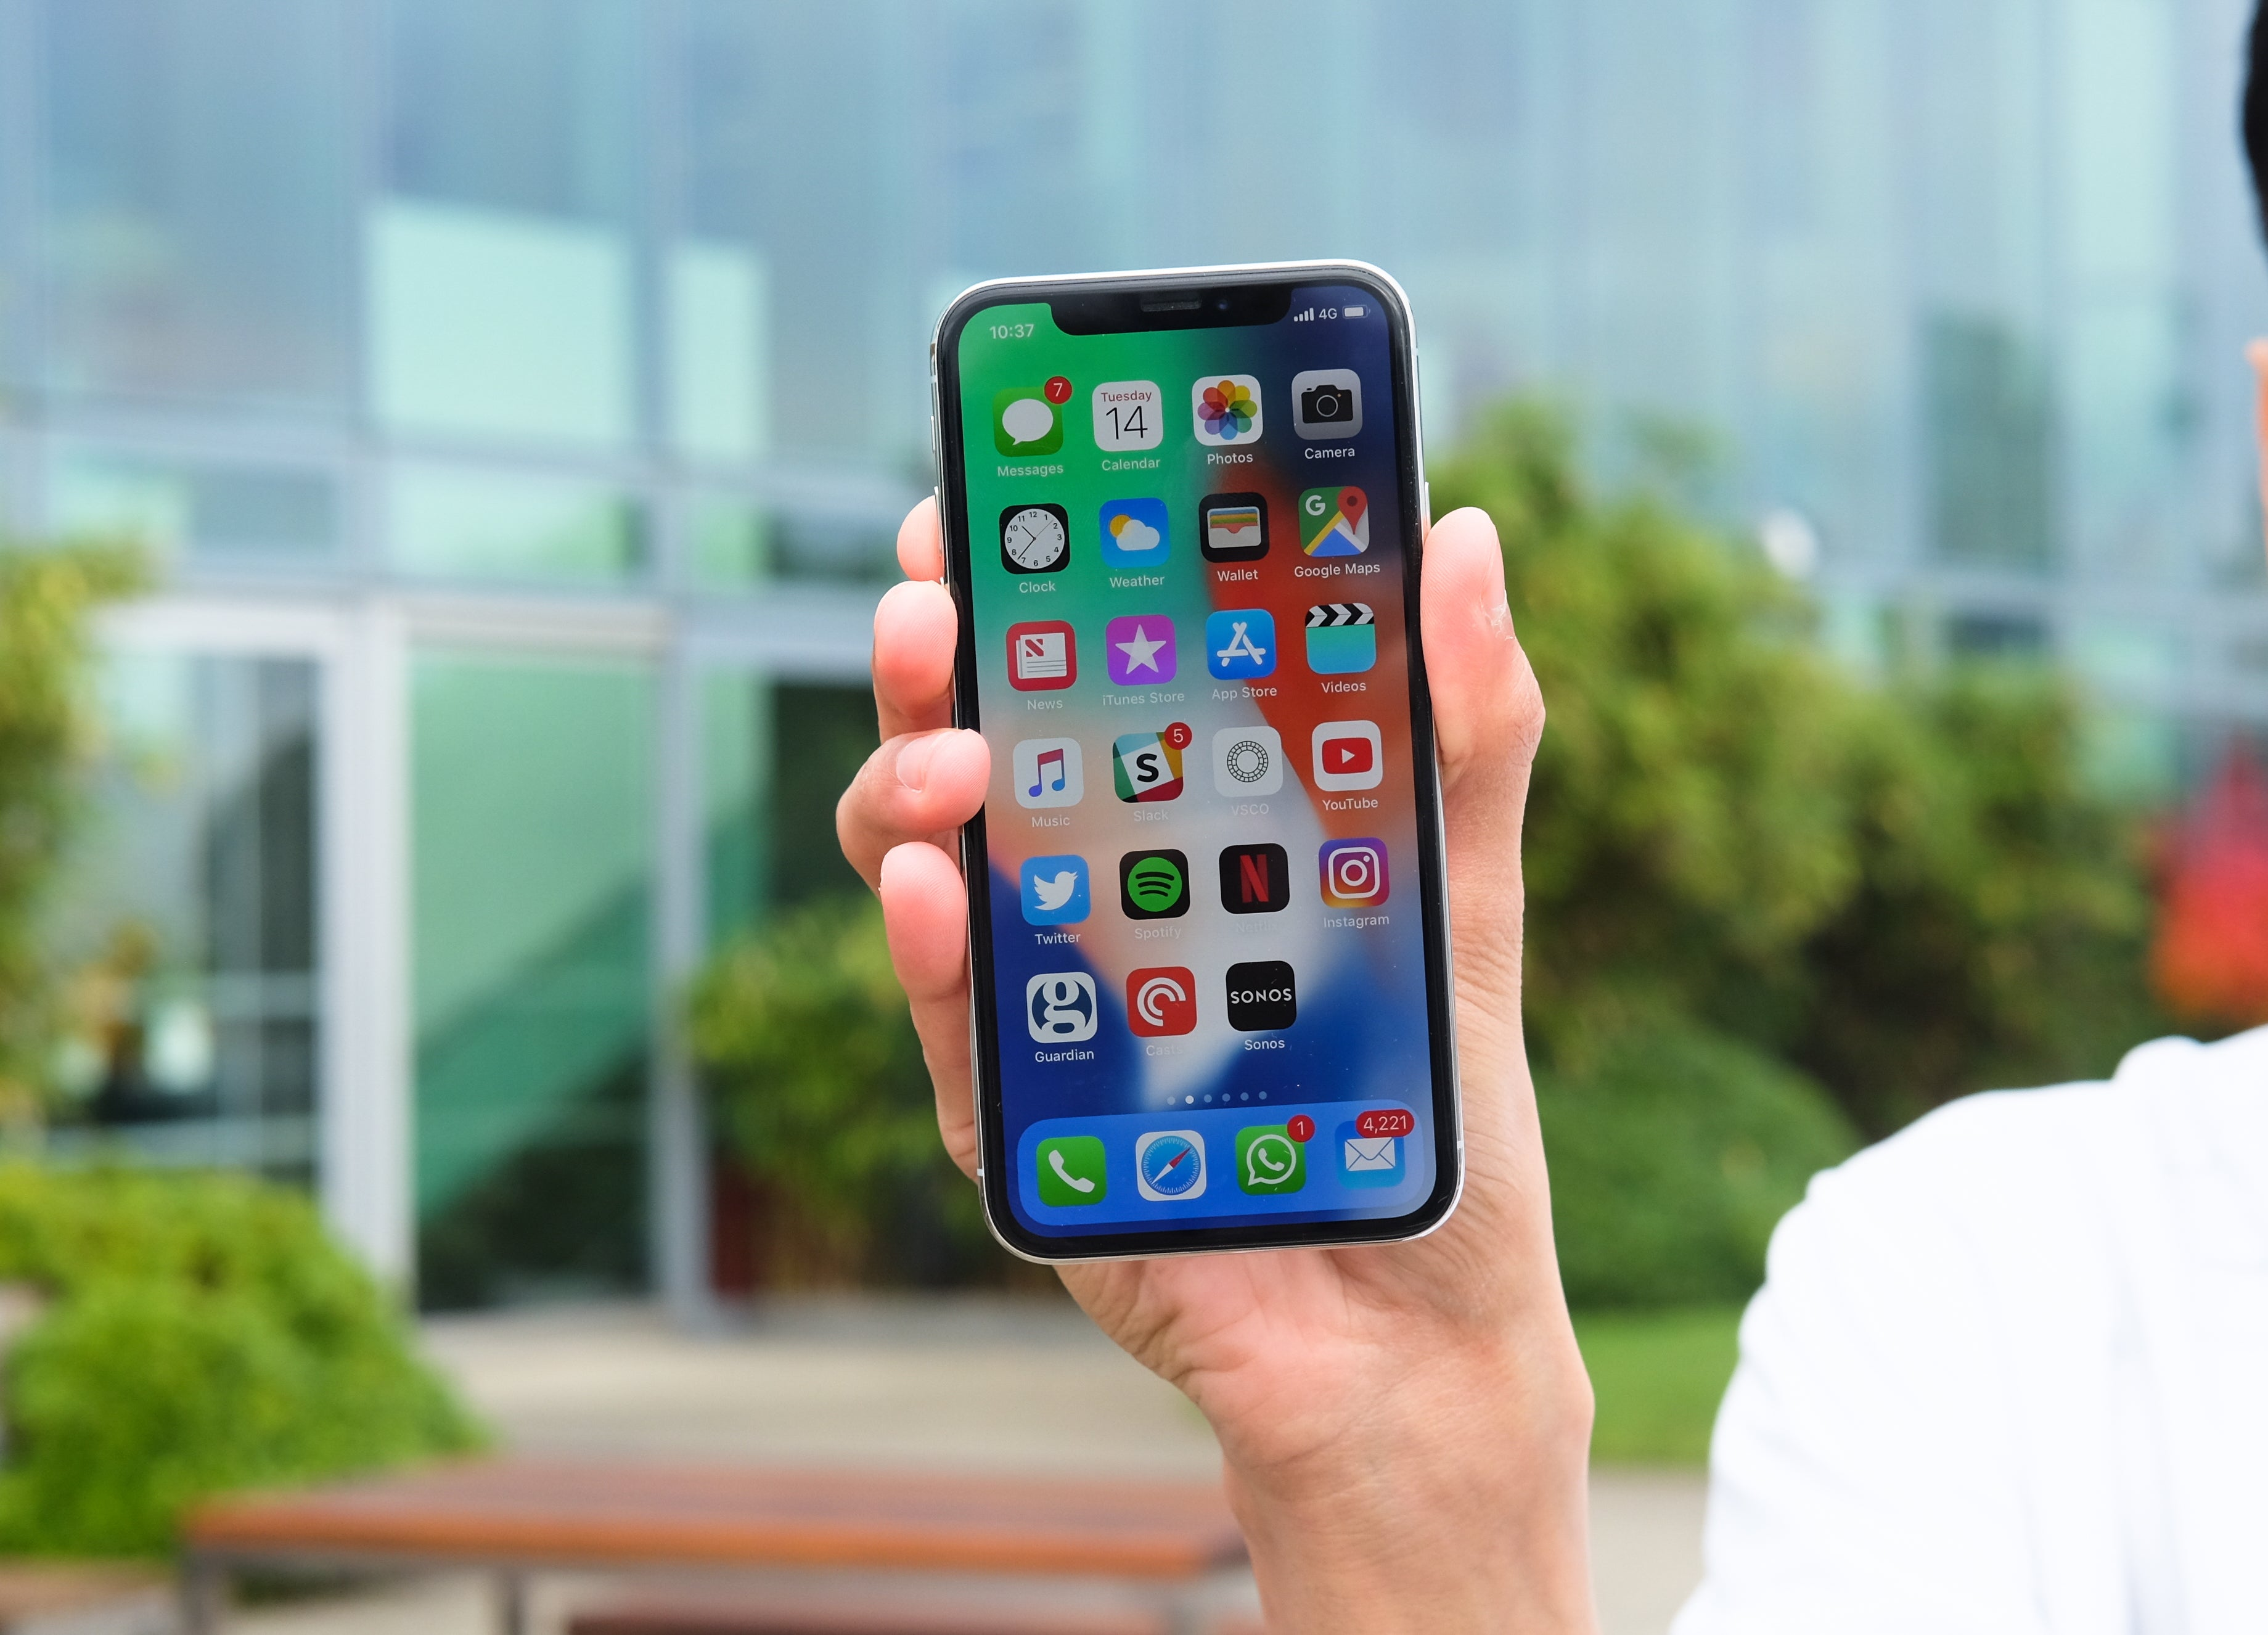 Apple's Jony Ive is back in charge of design – including next iPhone